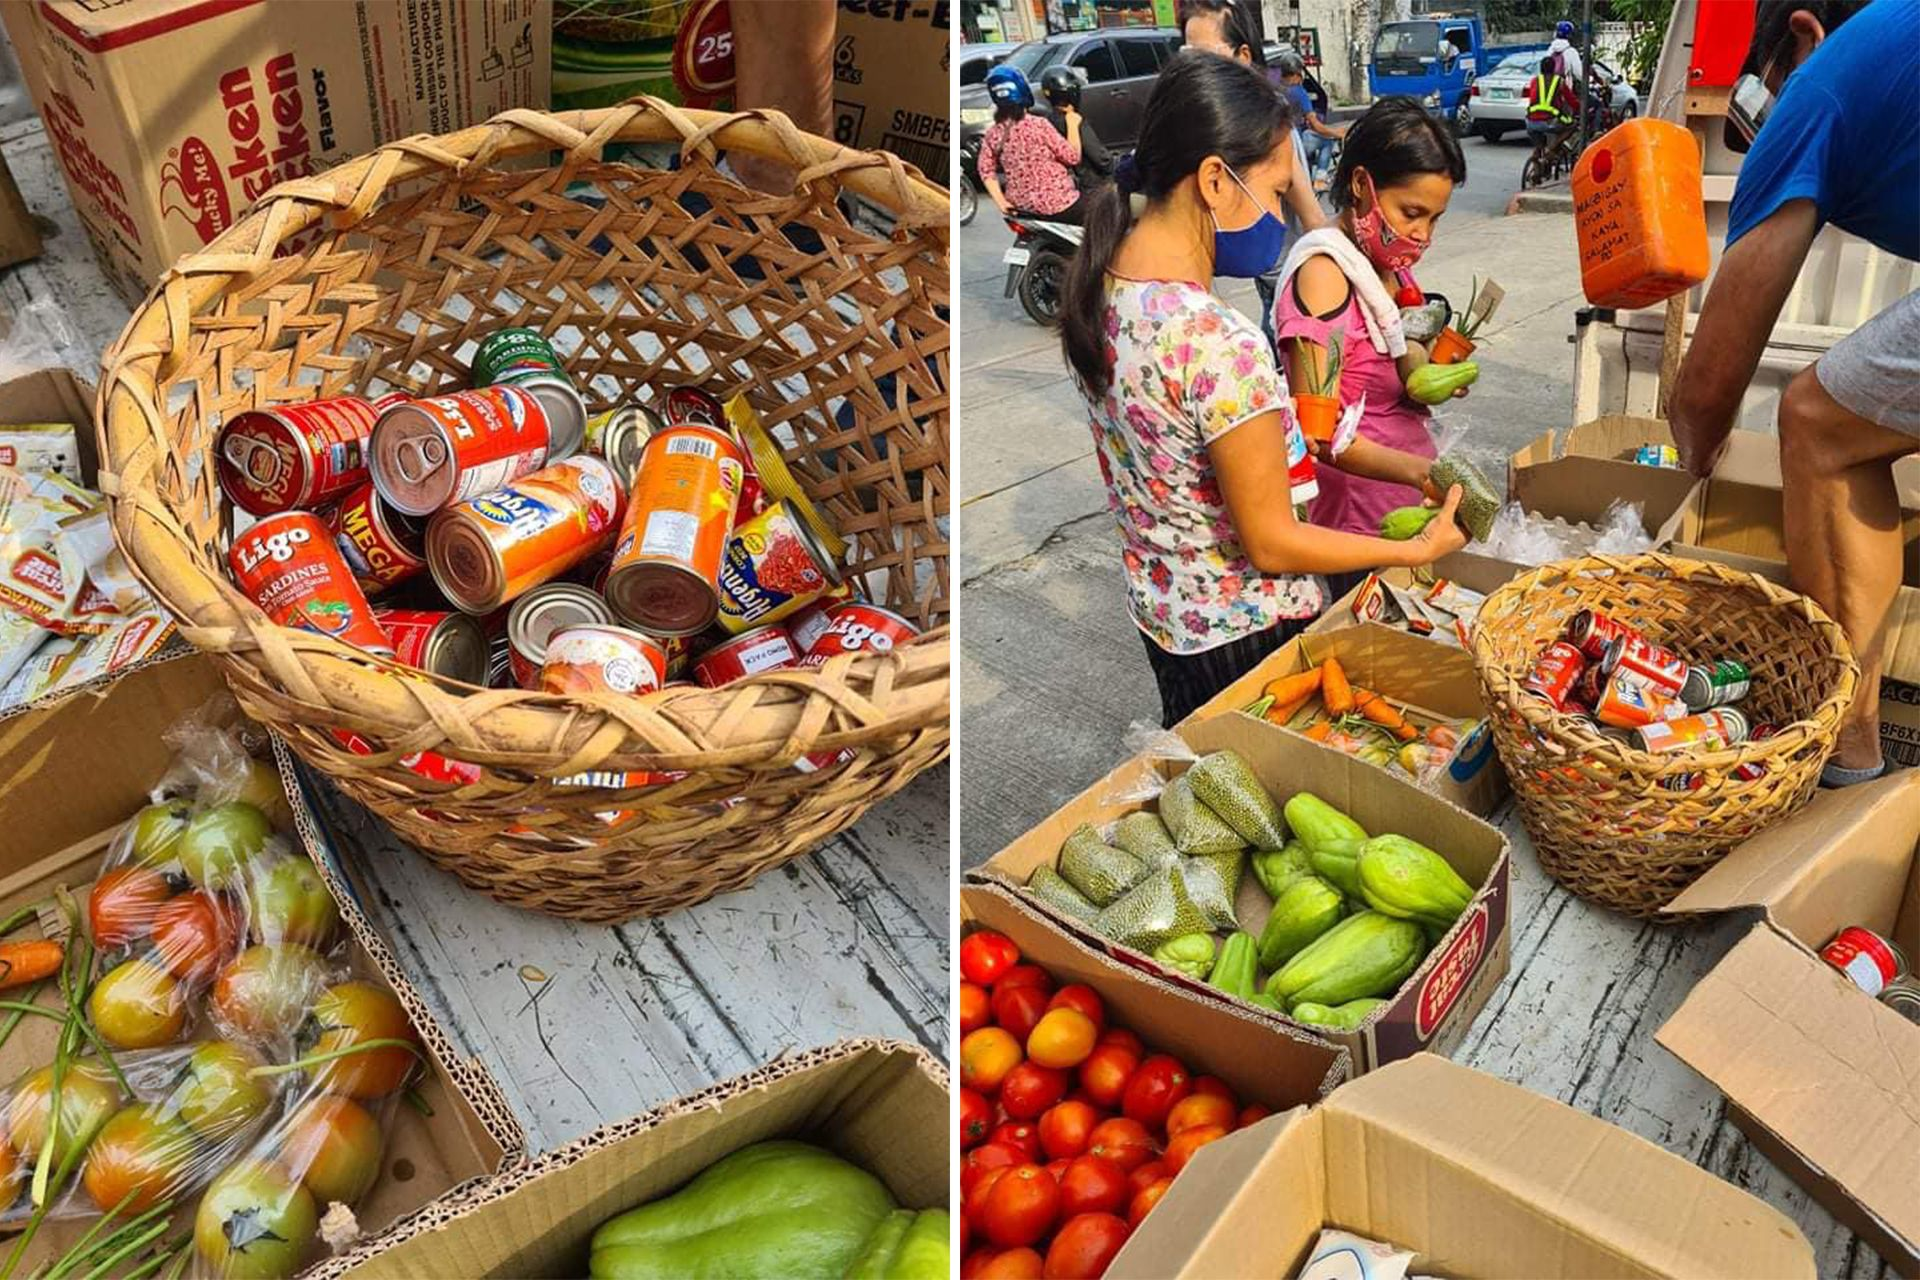 Greenwoods community pantry in Cainta, Rizal